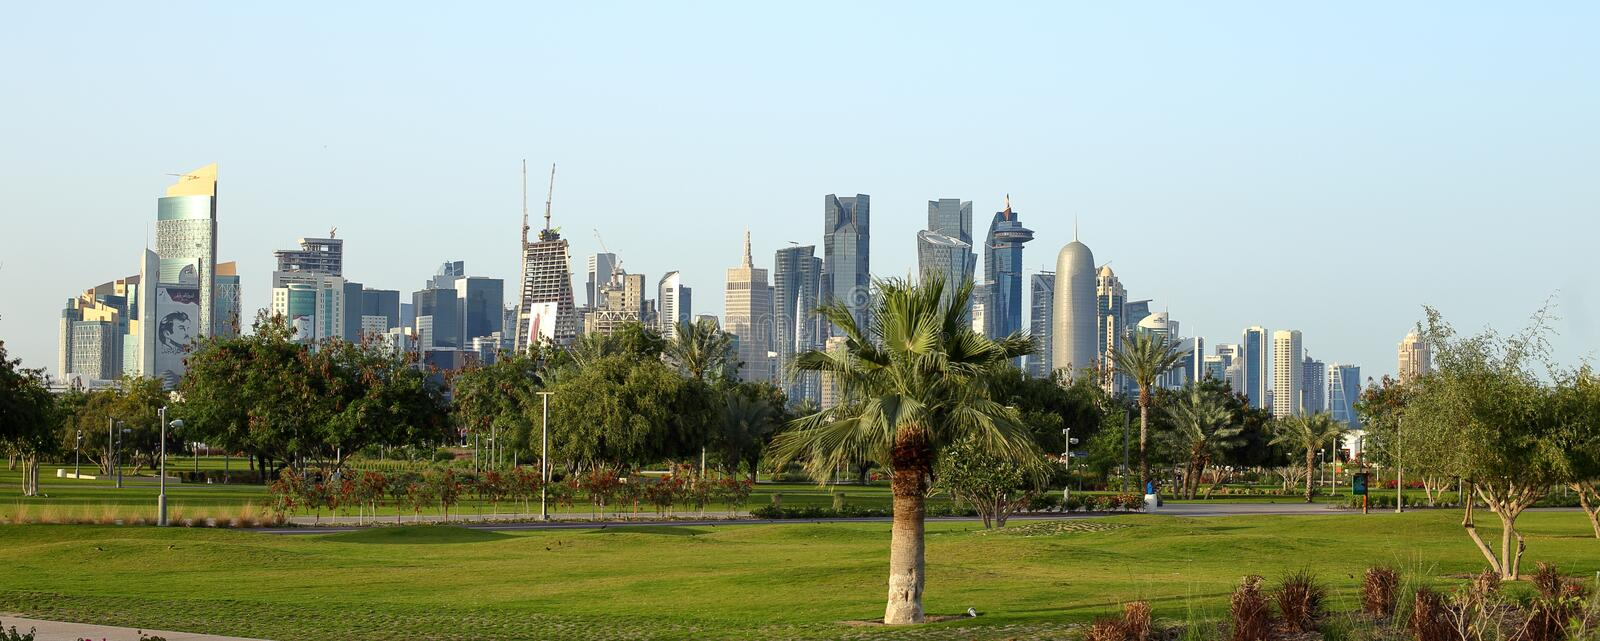 Towers seen from Bidda Park in Doha, Qatar. BIDDA PARK, Doha, Qatar - March 21, 2018: View of the newly opened Bidda Park in the centre of Qatar`s capital royalty free stock photo